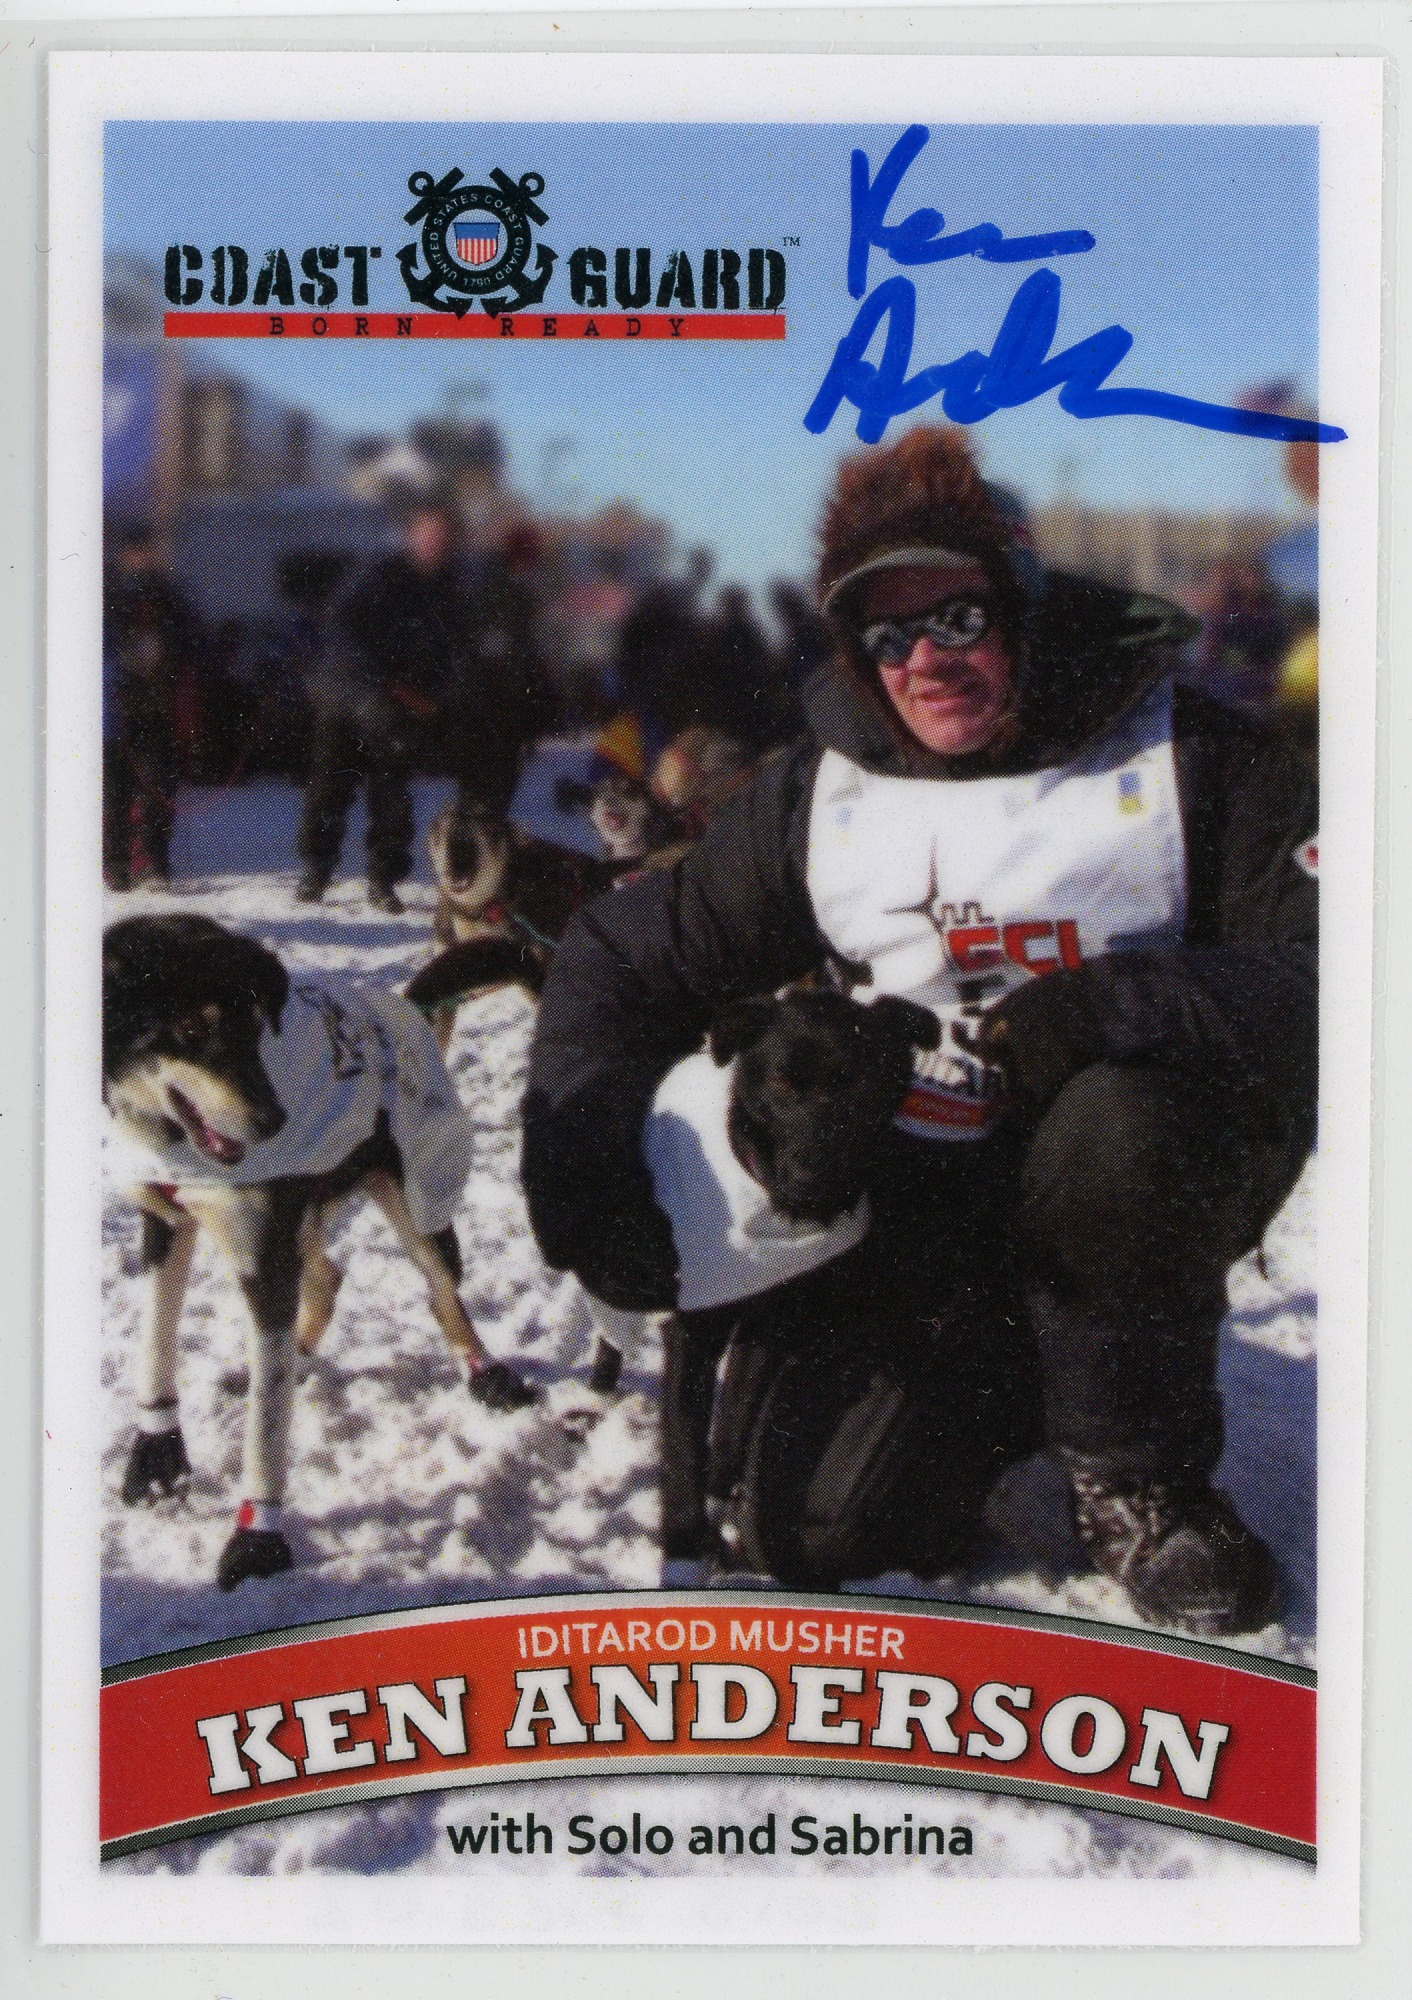 images for Ken Anderson 2011 Iditarod sports card